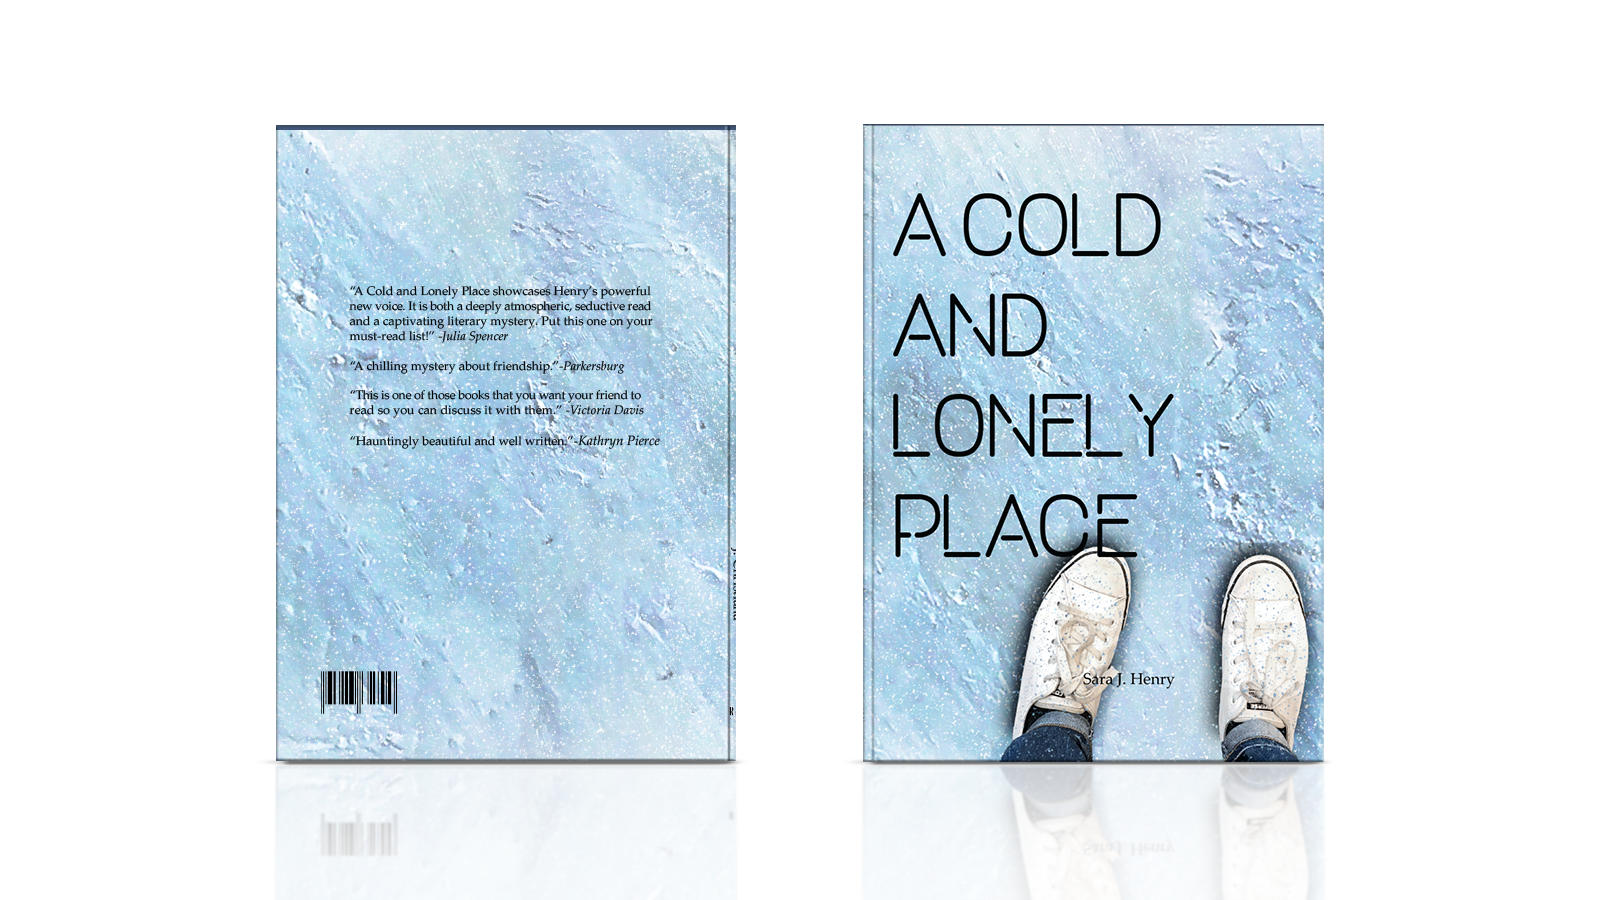 book cover mockup design.png